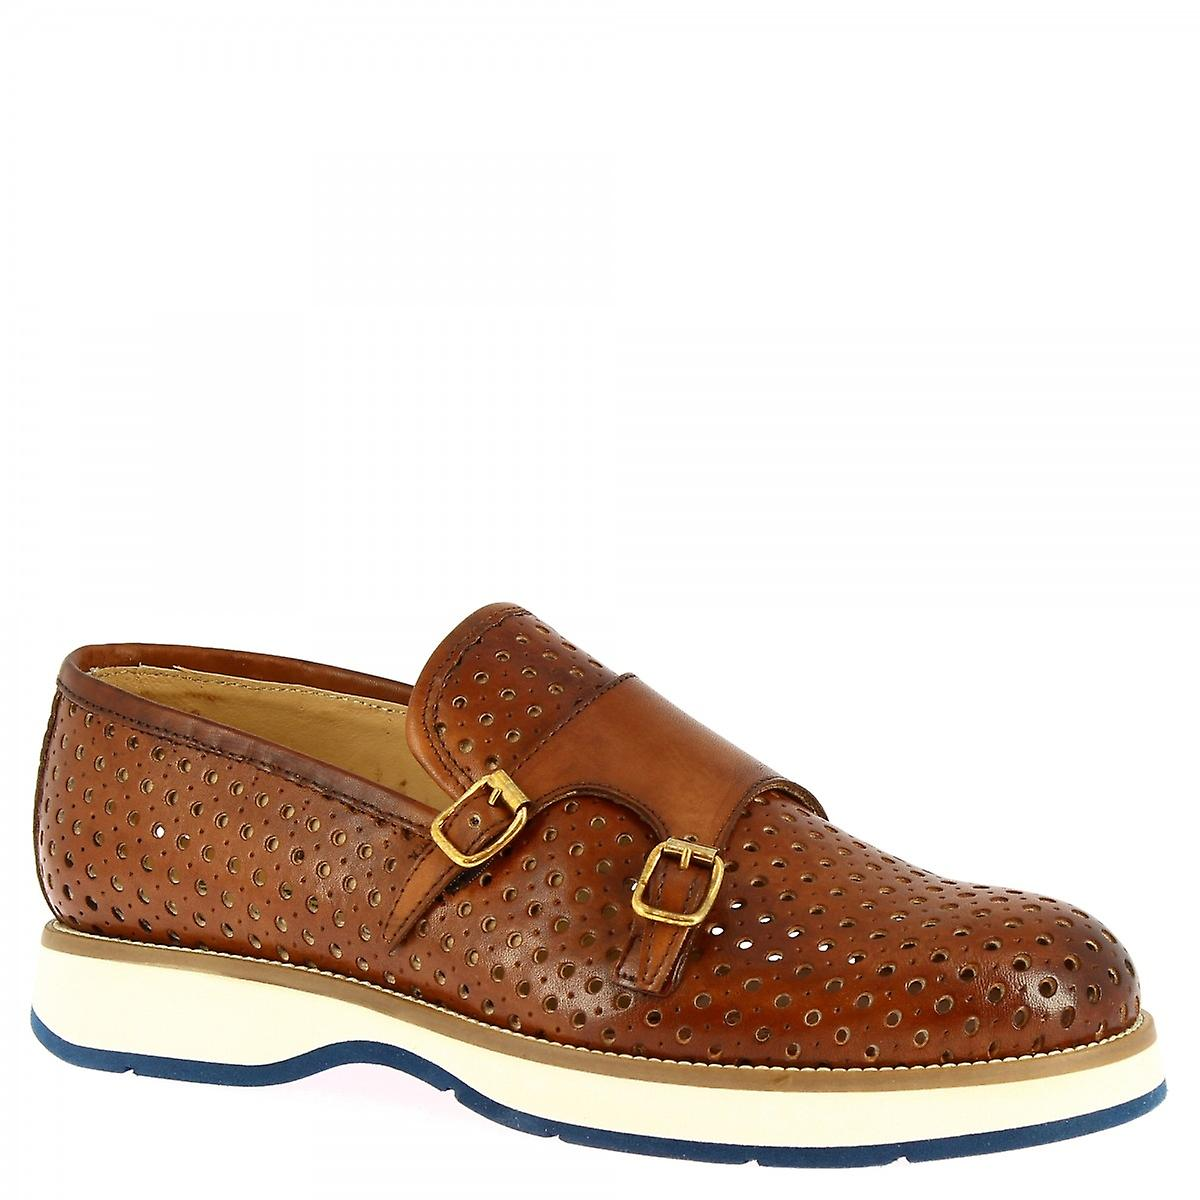 Men's handmade loafers shoes with buckles in tan openwork calf leather 80JDd